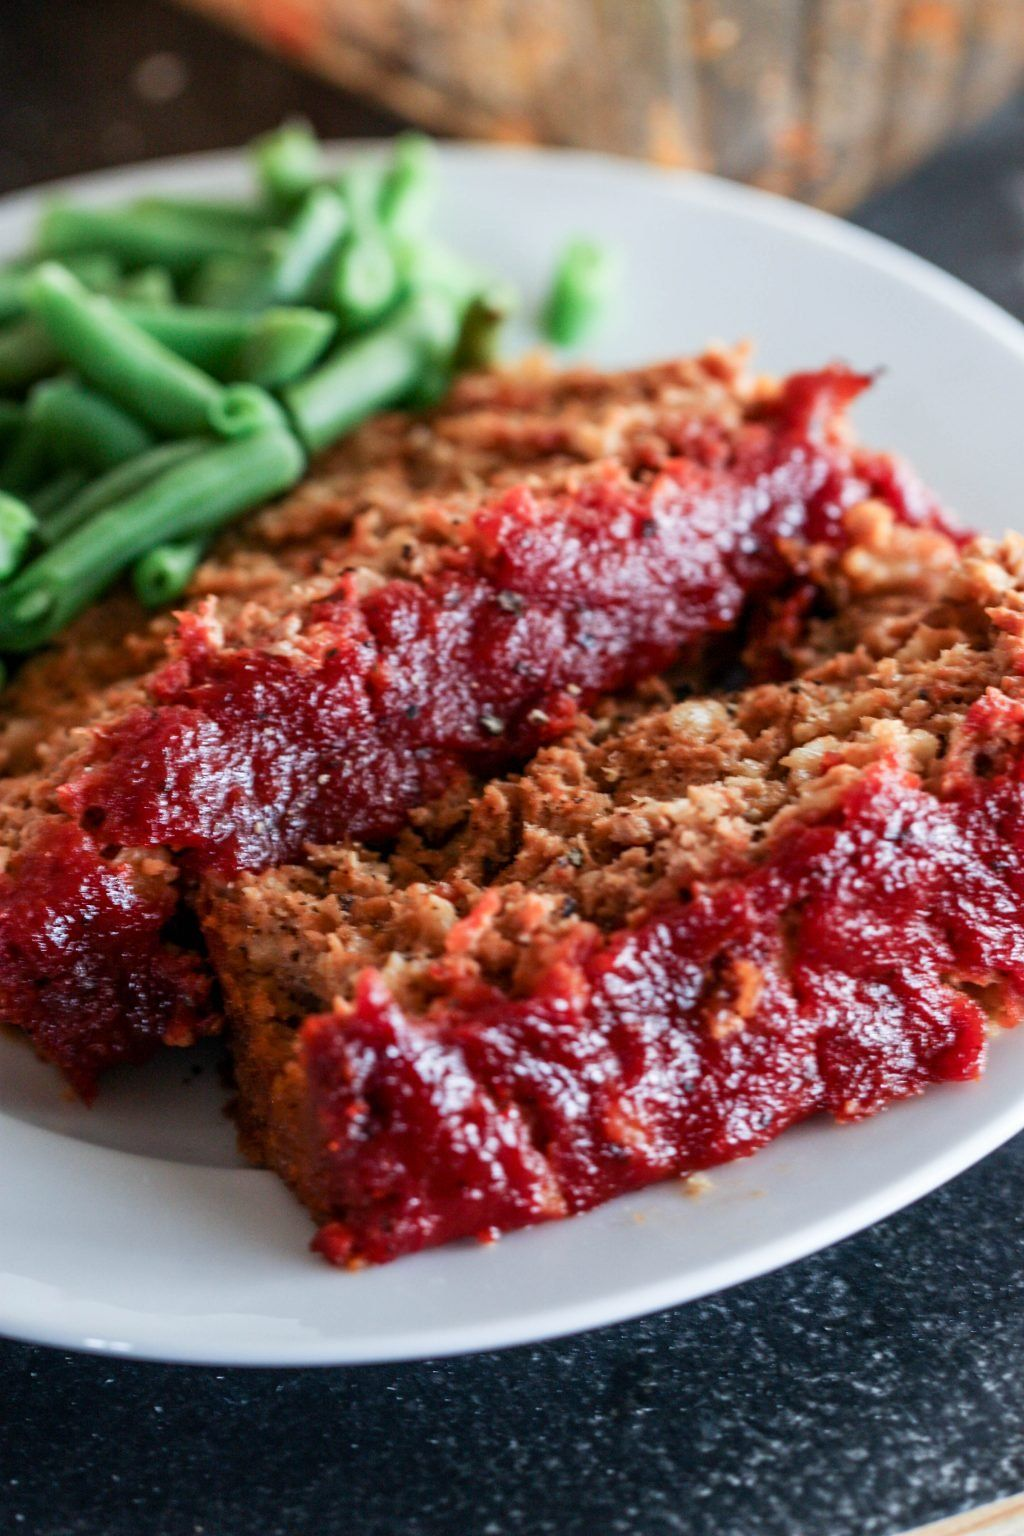 A Moist Turkey Meatloaf That S Perfectly Seasoned Loaded With Colby Jack Cheese And Brushed With B Bbq Turkey Meatloaf Turkey Meatloaf Turkey Meatloaf Recipes